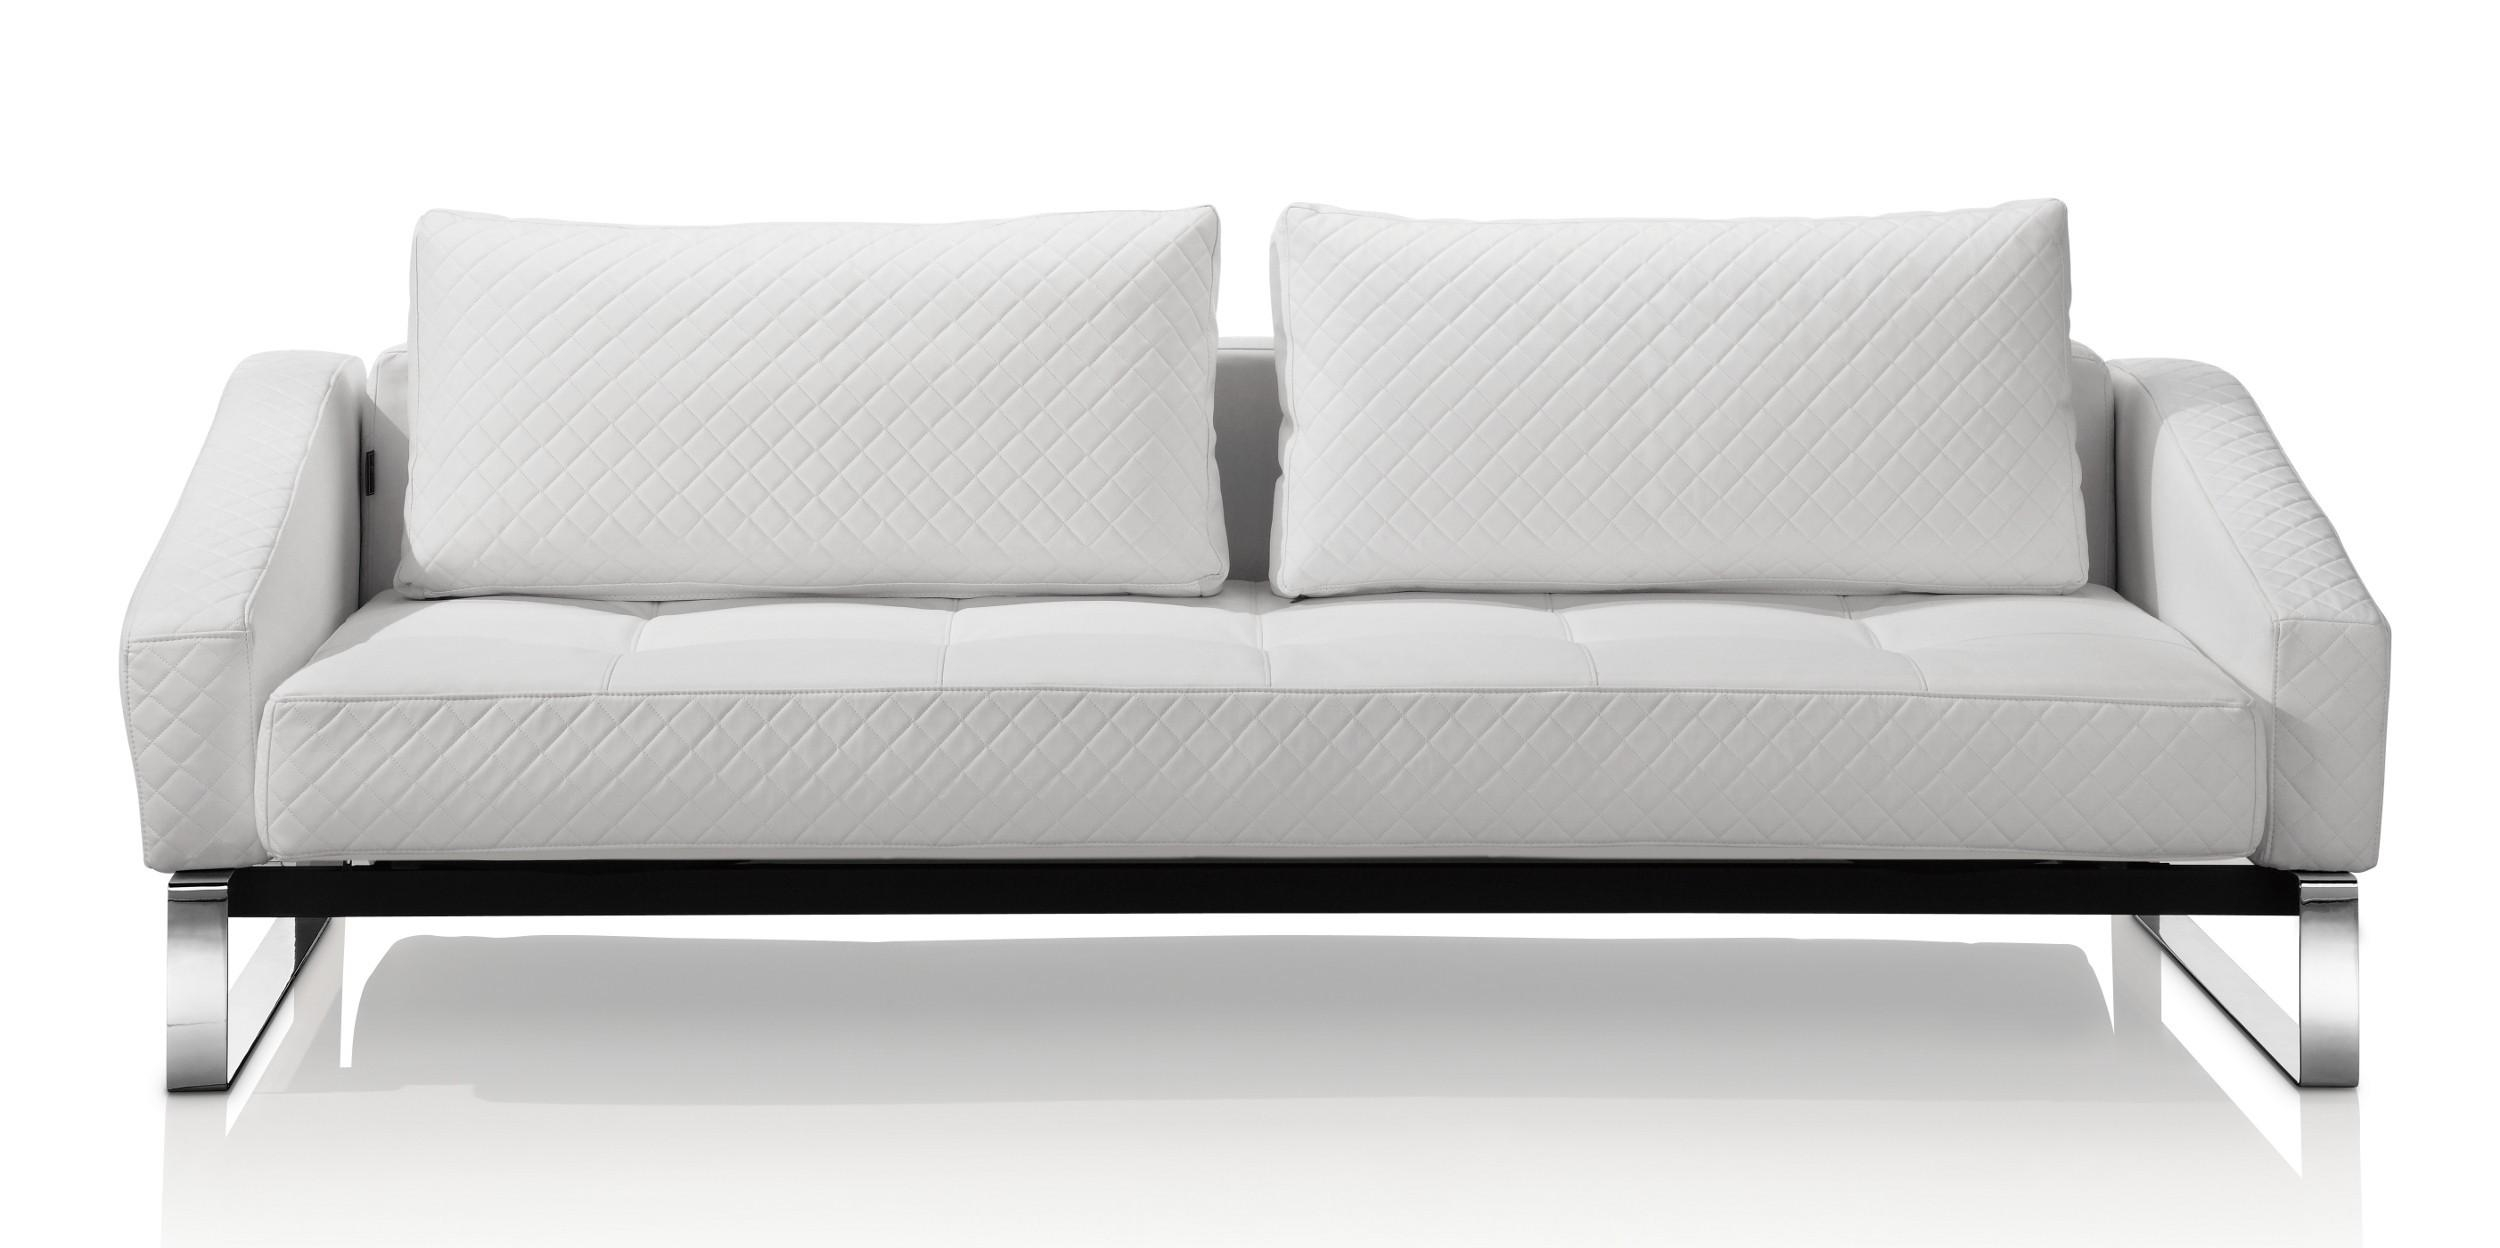 Best White Fabric Sofa 21 On Sofas And Couches Set With White Inside White Fabric Sofas (Image 2 of 20)